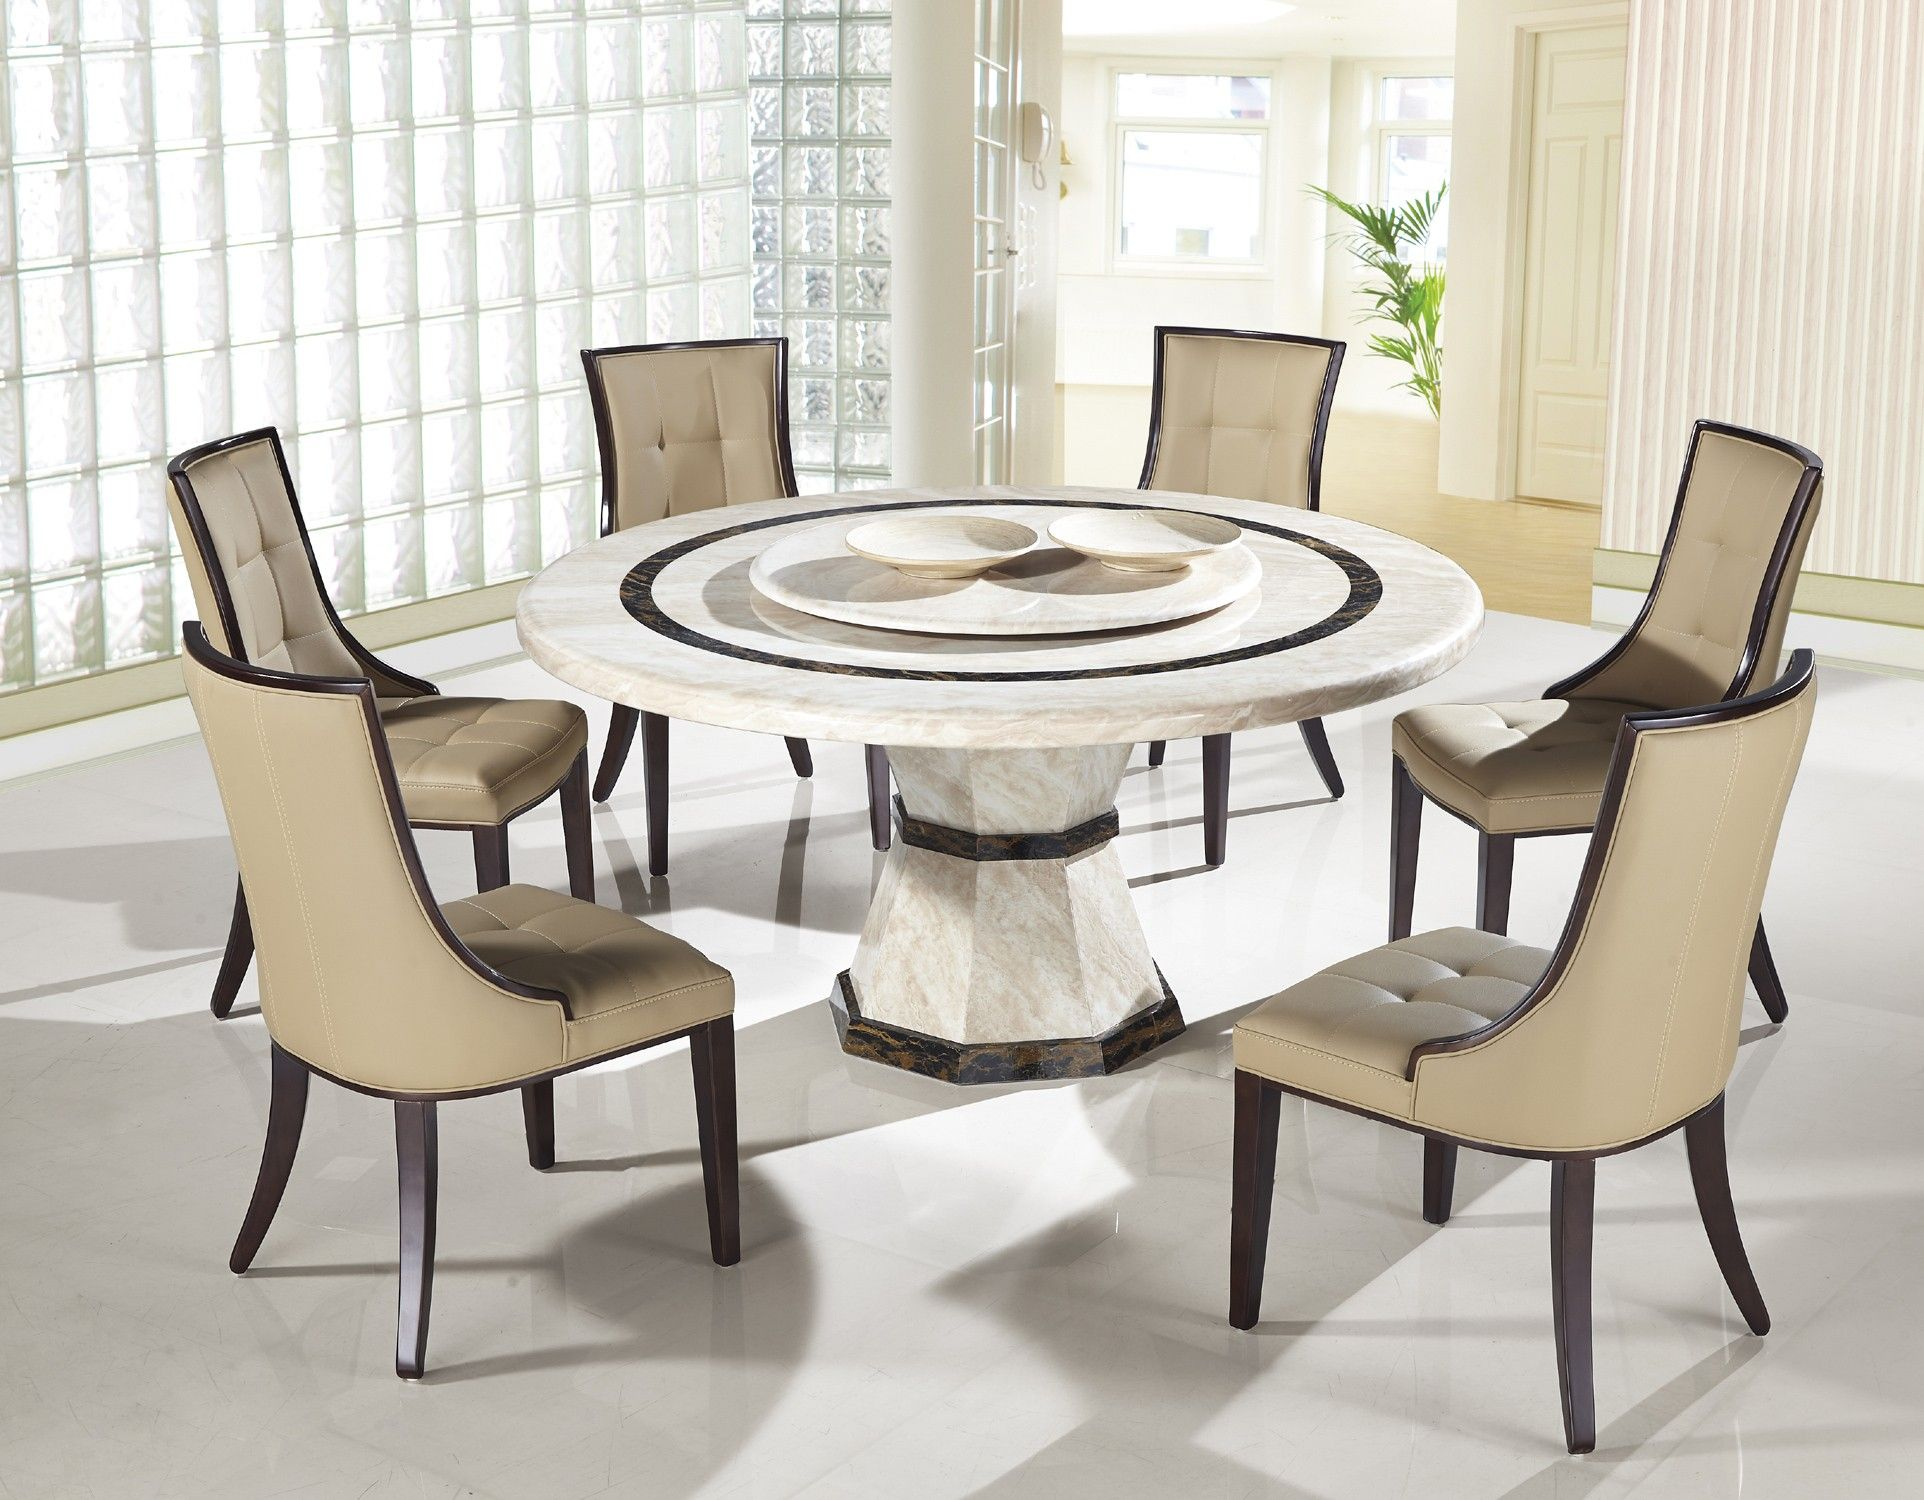 11 Creative Design Of Expandable Round Dining Table